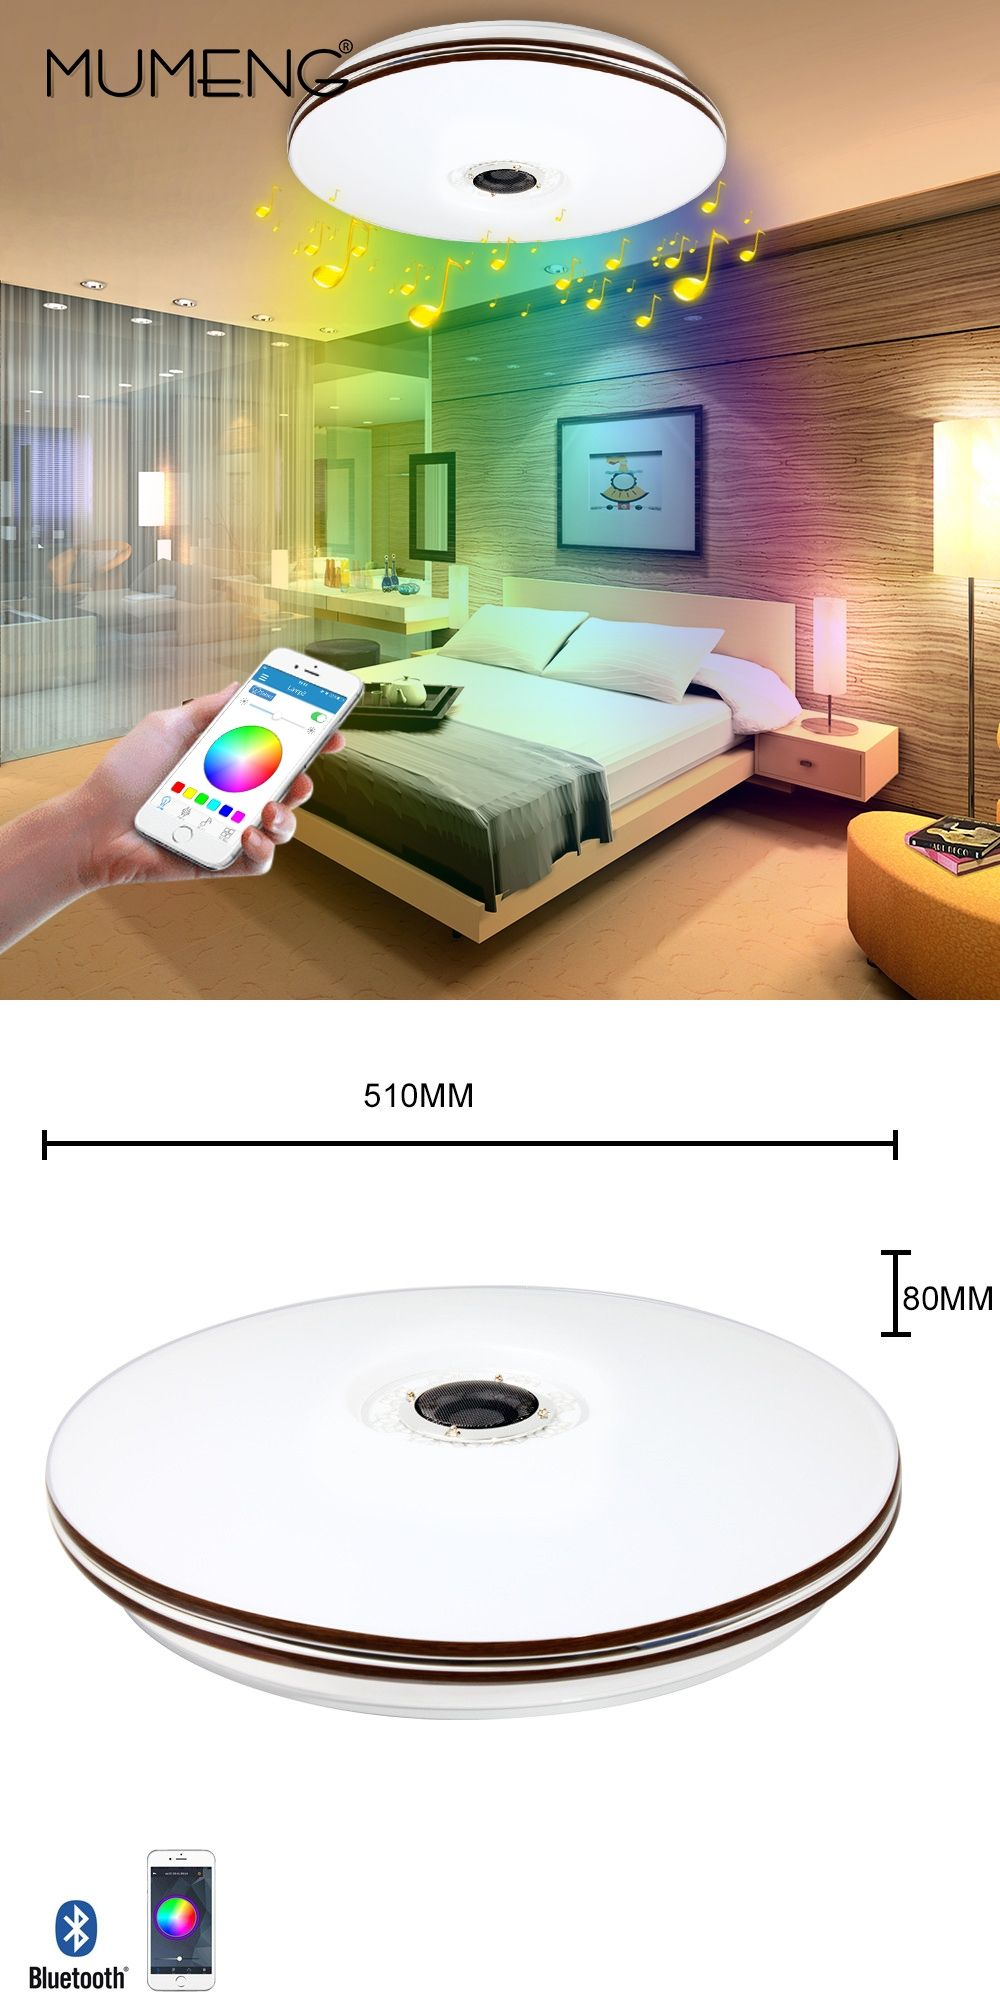 mumeng LED Ceiling Light Modern RGB Living Room Luminaria 32W ...